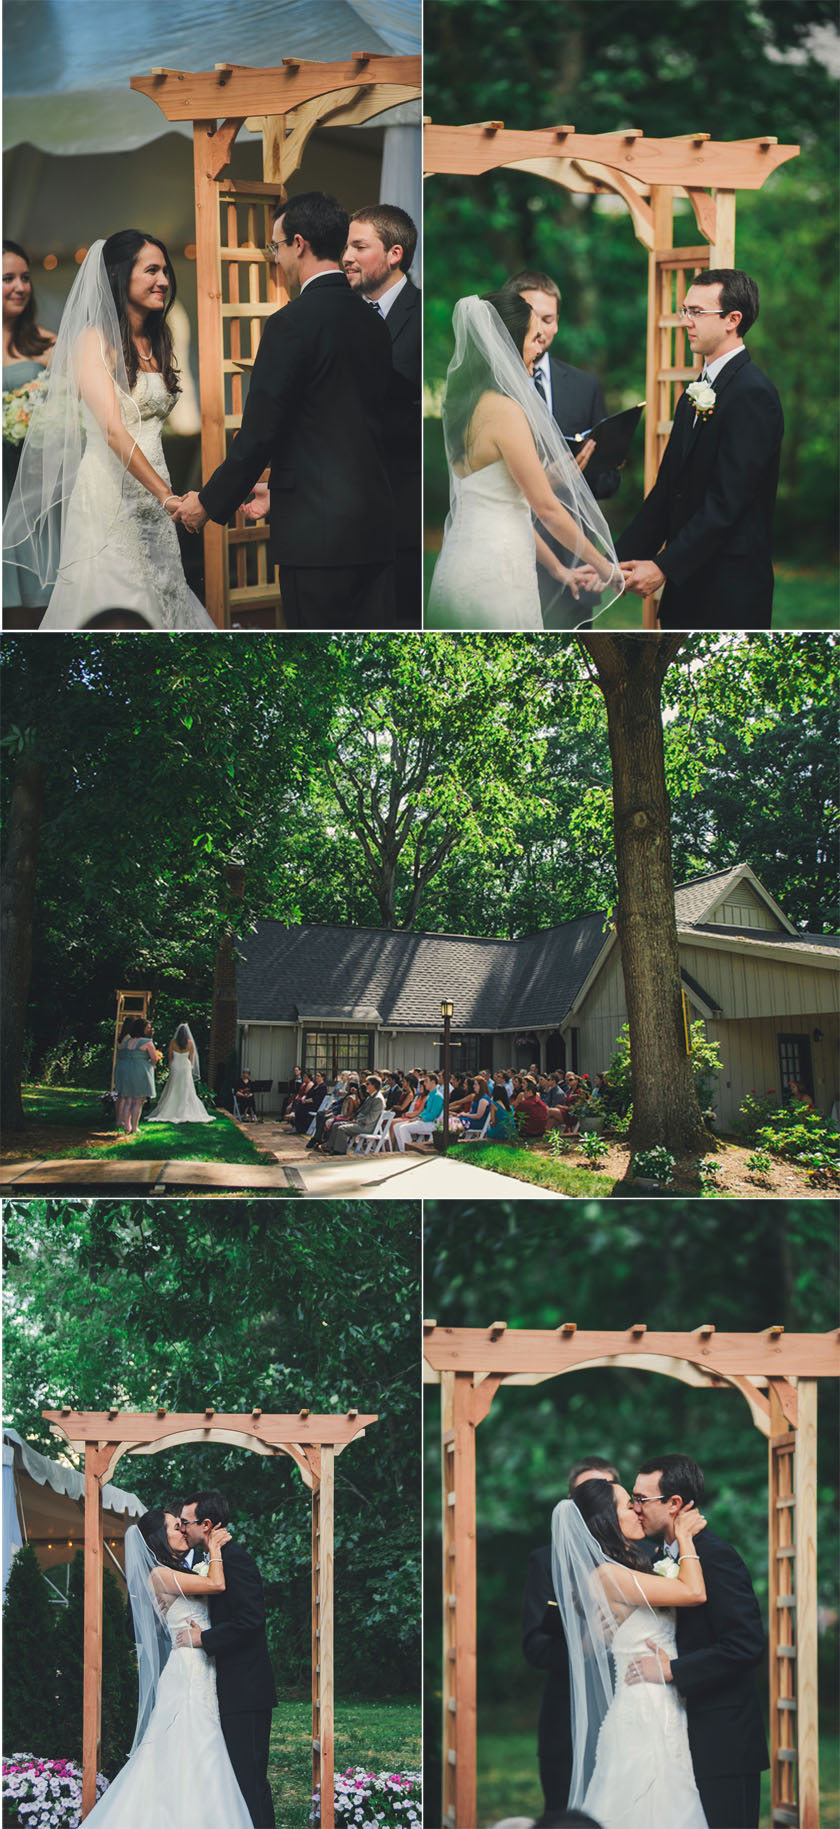 Connectiopn_Photography_Raleigh_NC_Wedding_Photographer_25